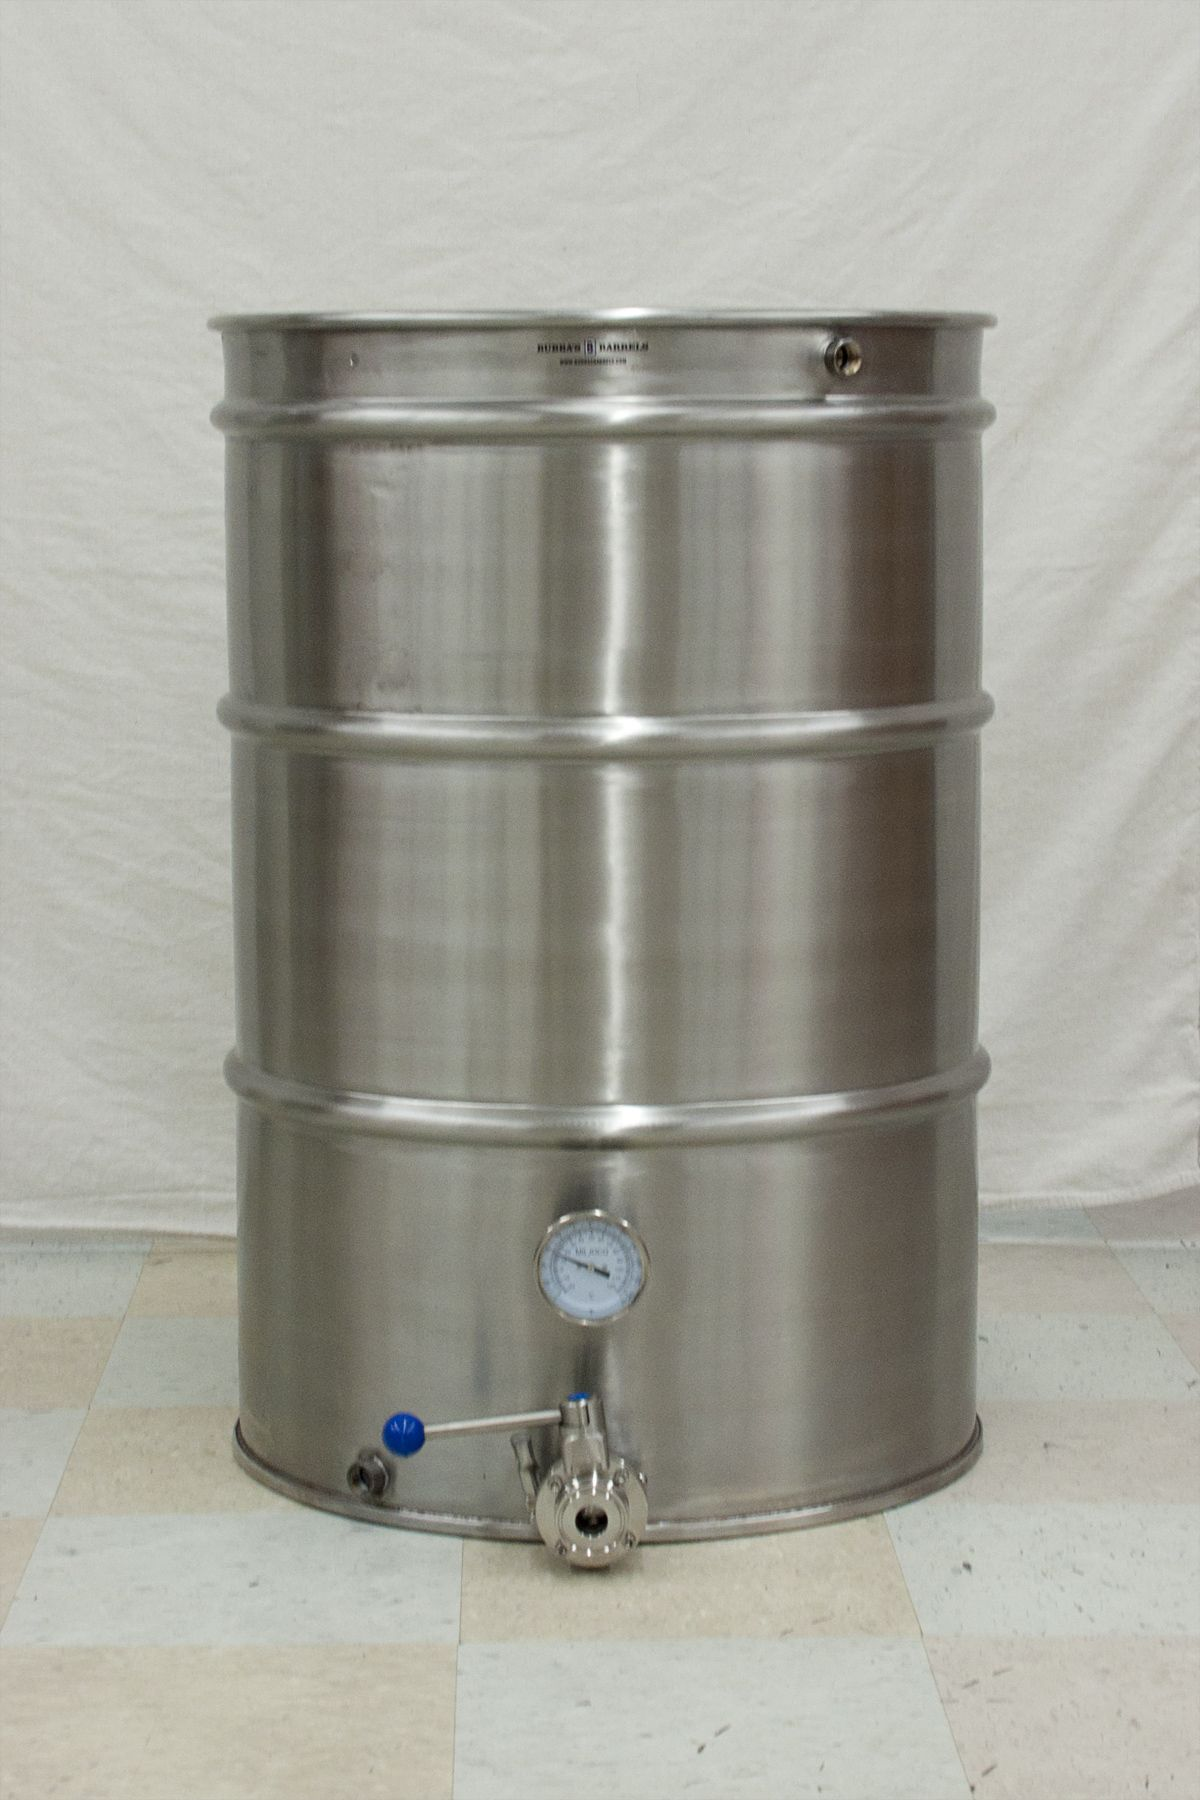 55 Gallon Brew Kettle Bubba S Barrels Kombucha Home Brewing Equipment Brewing